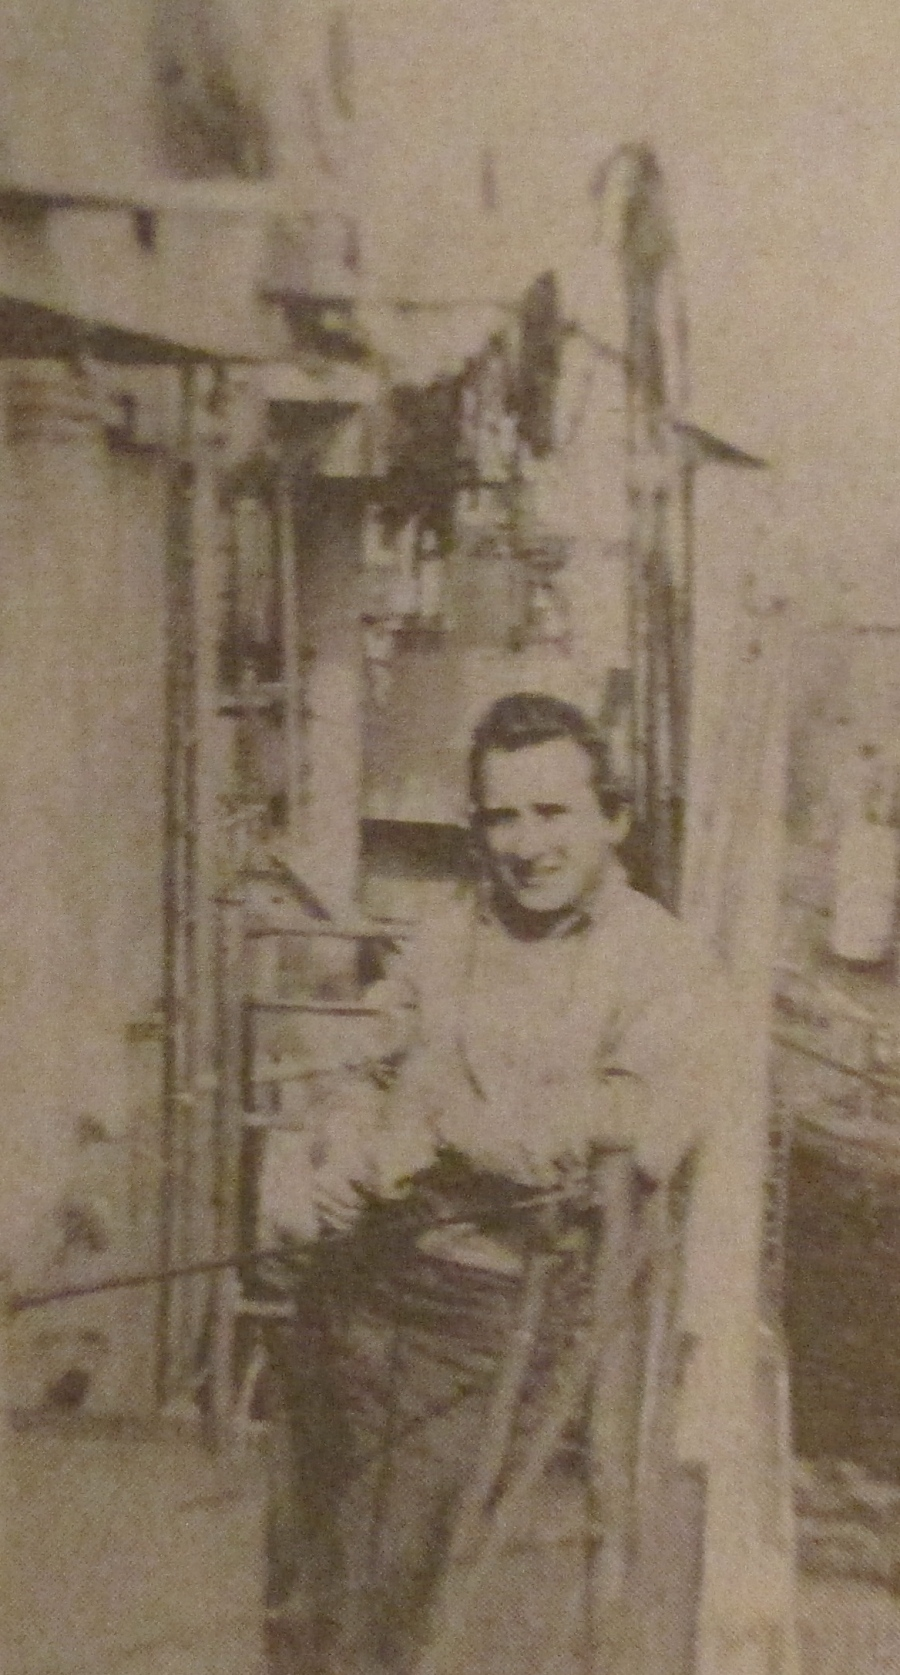 Wagner was about 19 years old when this picture was taken of him aboard the USS Gilligan, a destroyer escort. He was 17 when he joined the Navy in 1943. Photo provided